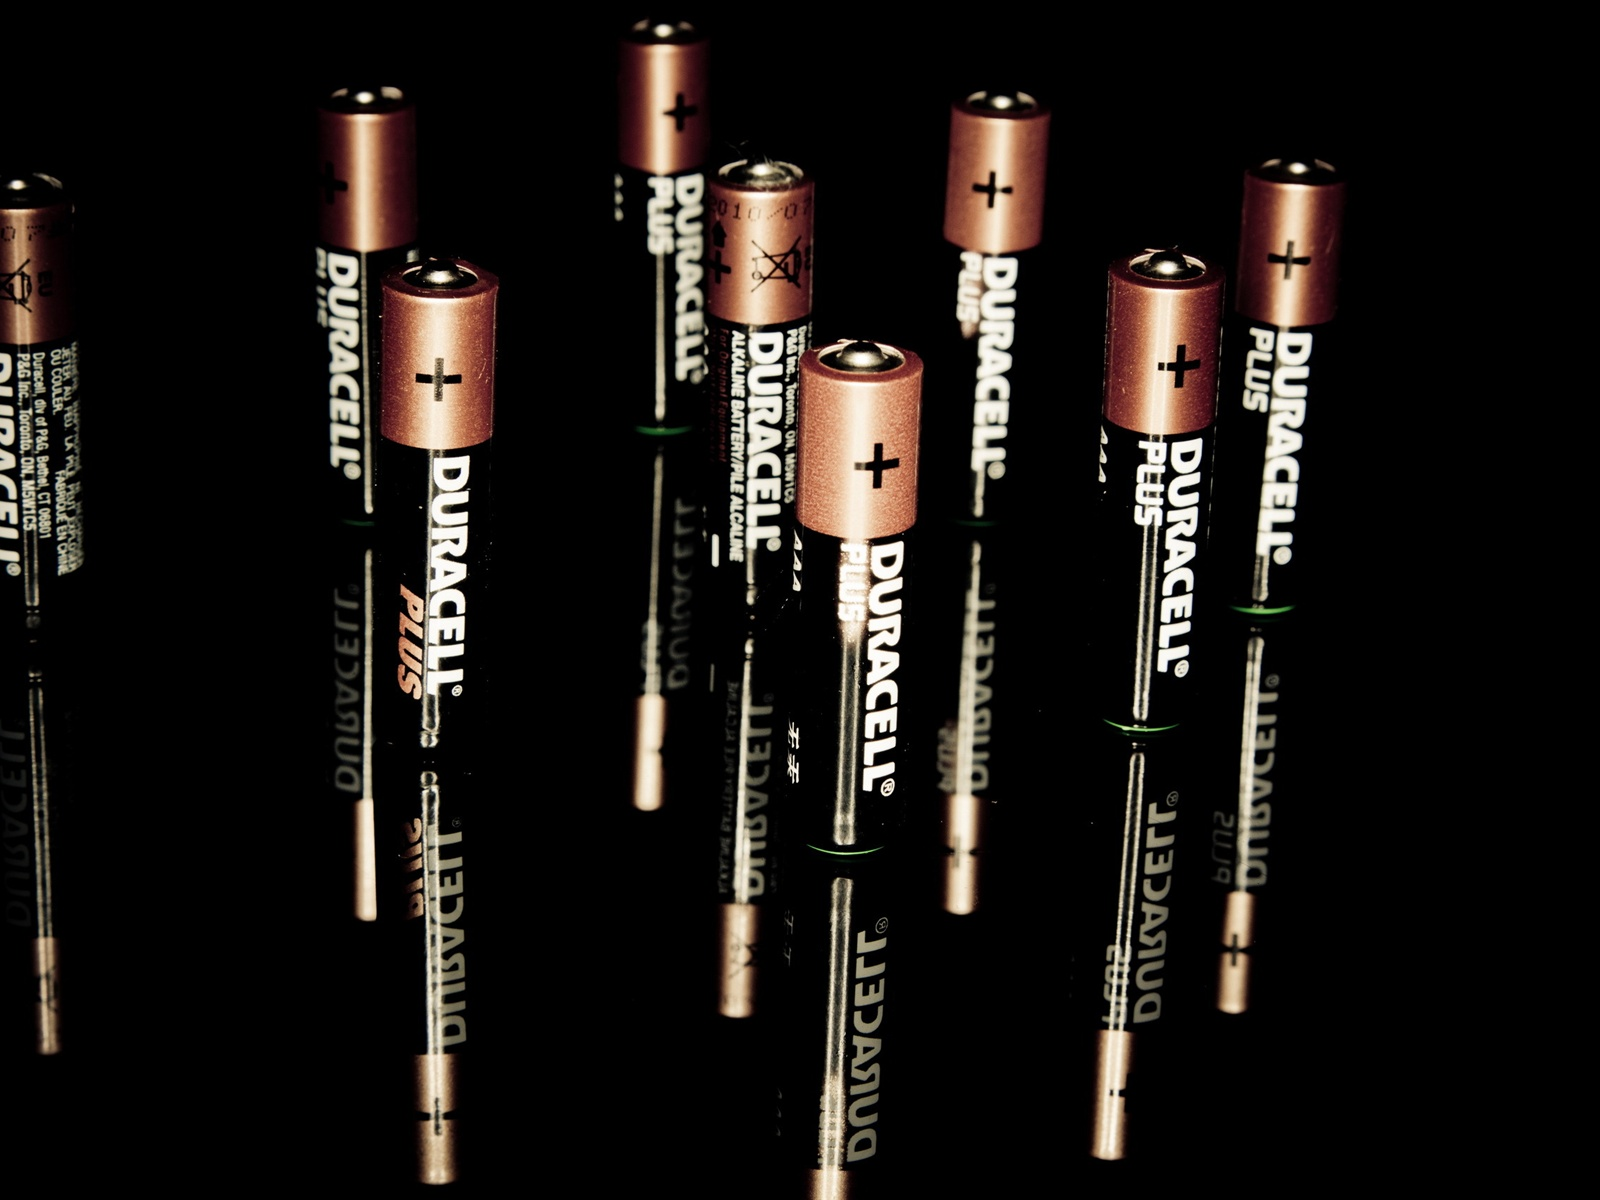 Wallpaper Duracell battery 2560x1600 HD Picture Image 1600x1200